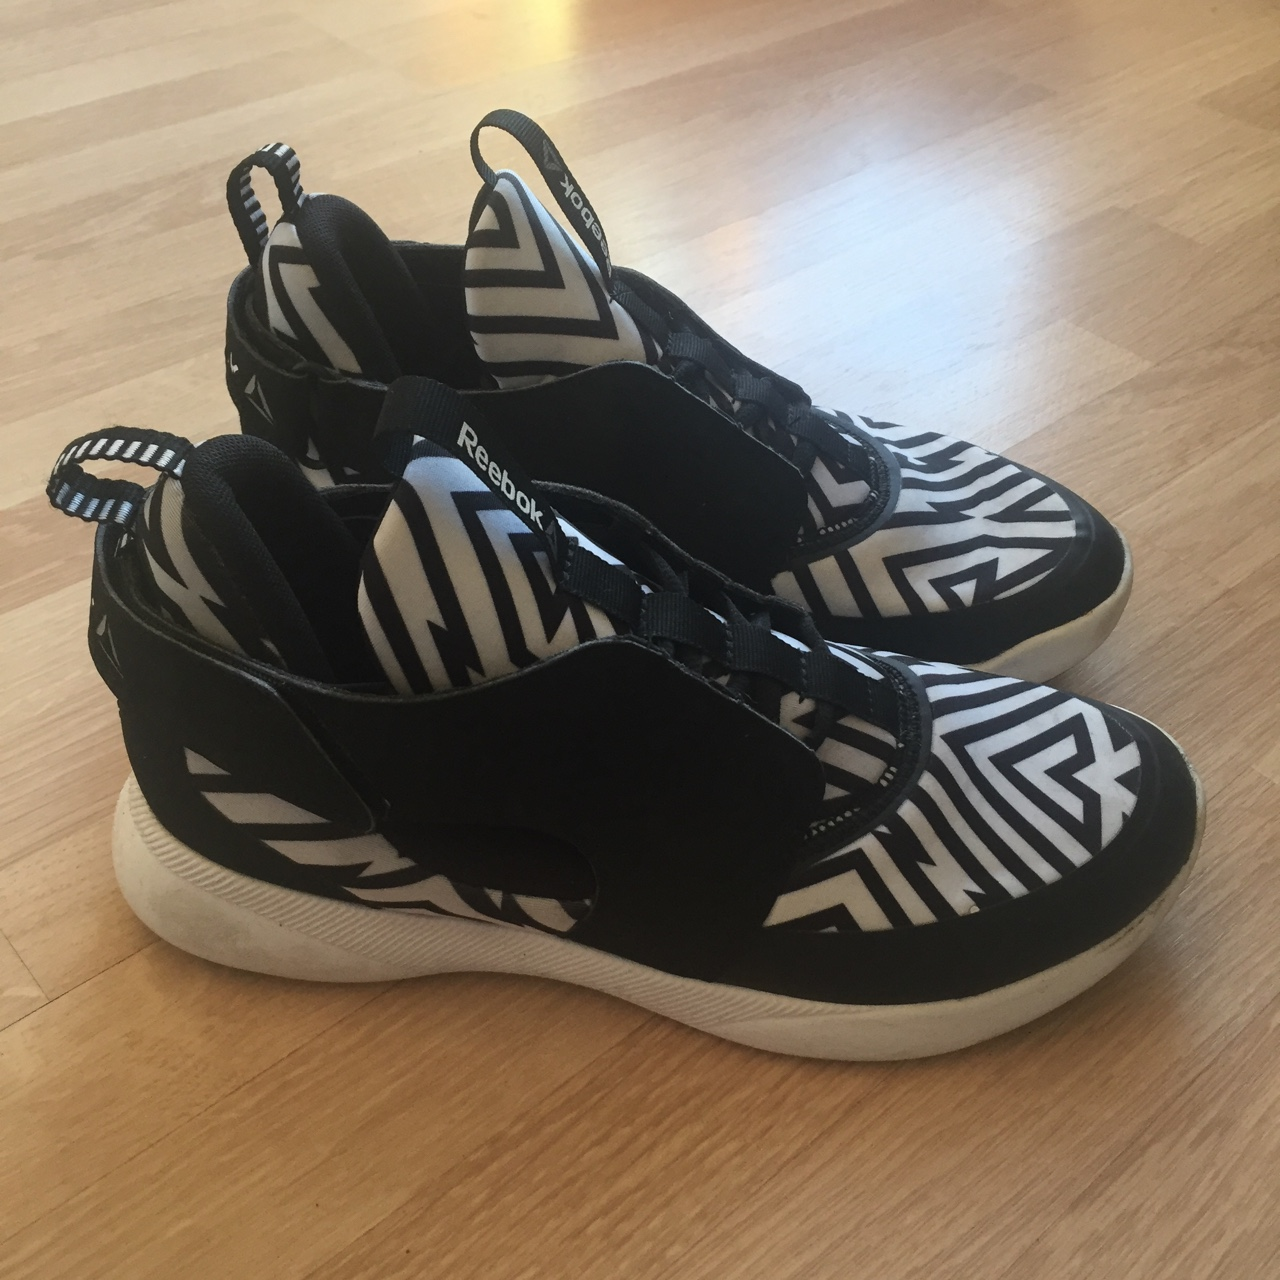 Reebok turnzone samples. Worn once. Bought for Depop